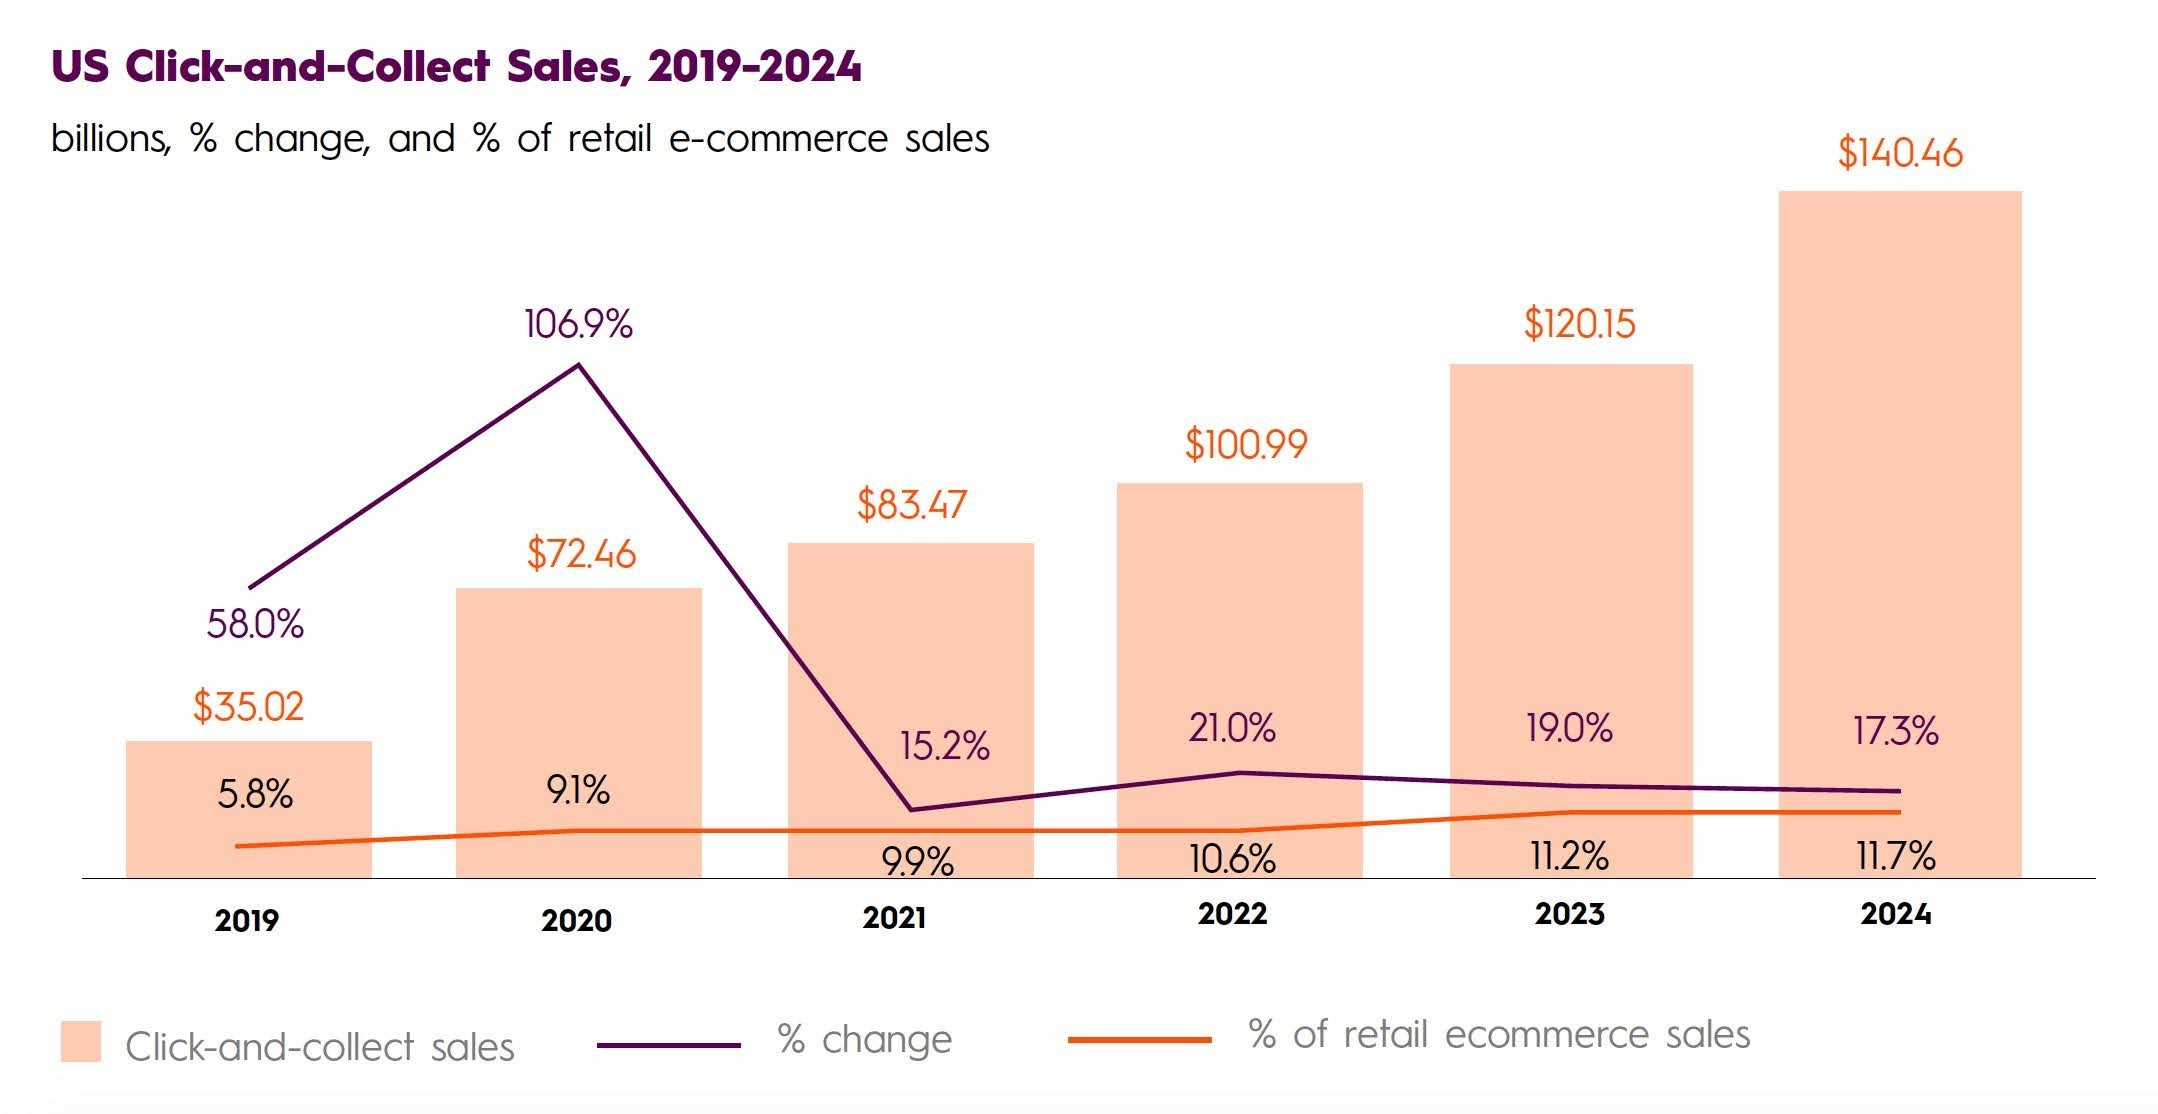 US Click-and-Collect Sales, 2019-2024. Billions, % change, and % of retail e-commerce sales